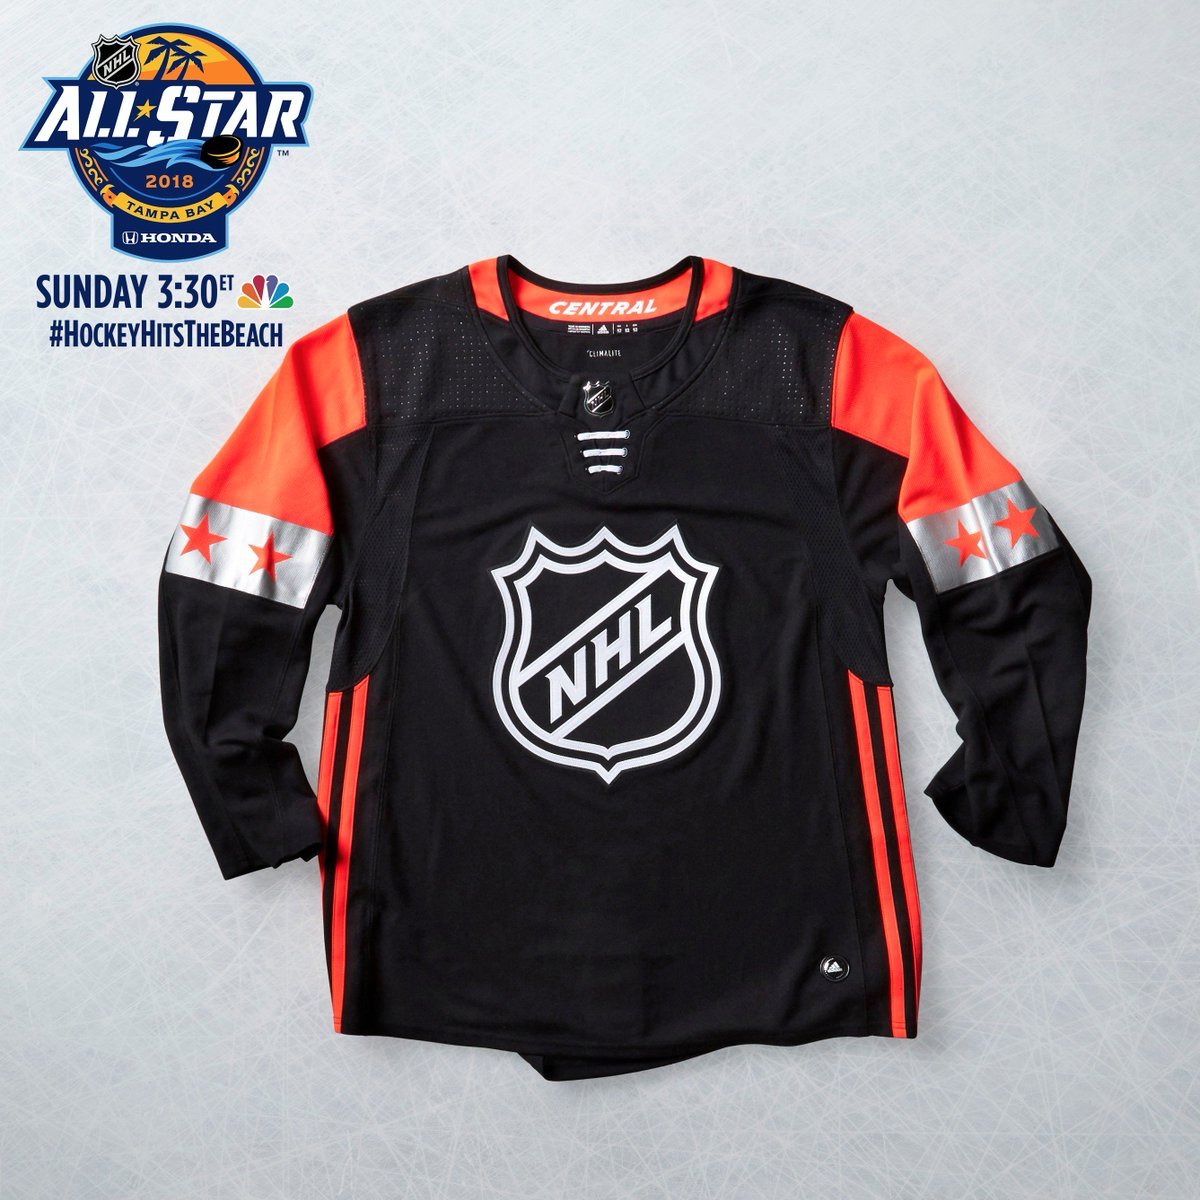 RT for the chance to win a 2018 #NHLAllStar Central Division jersey!